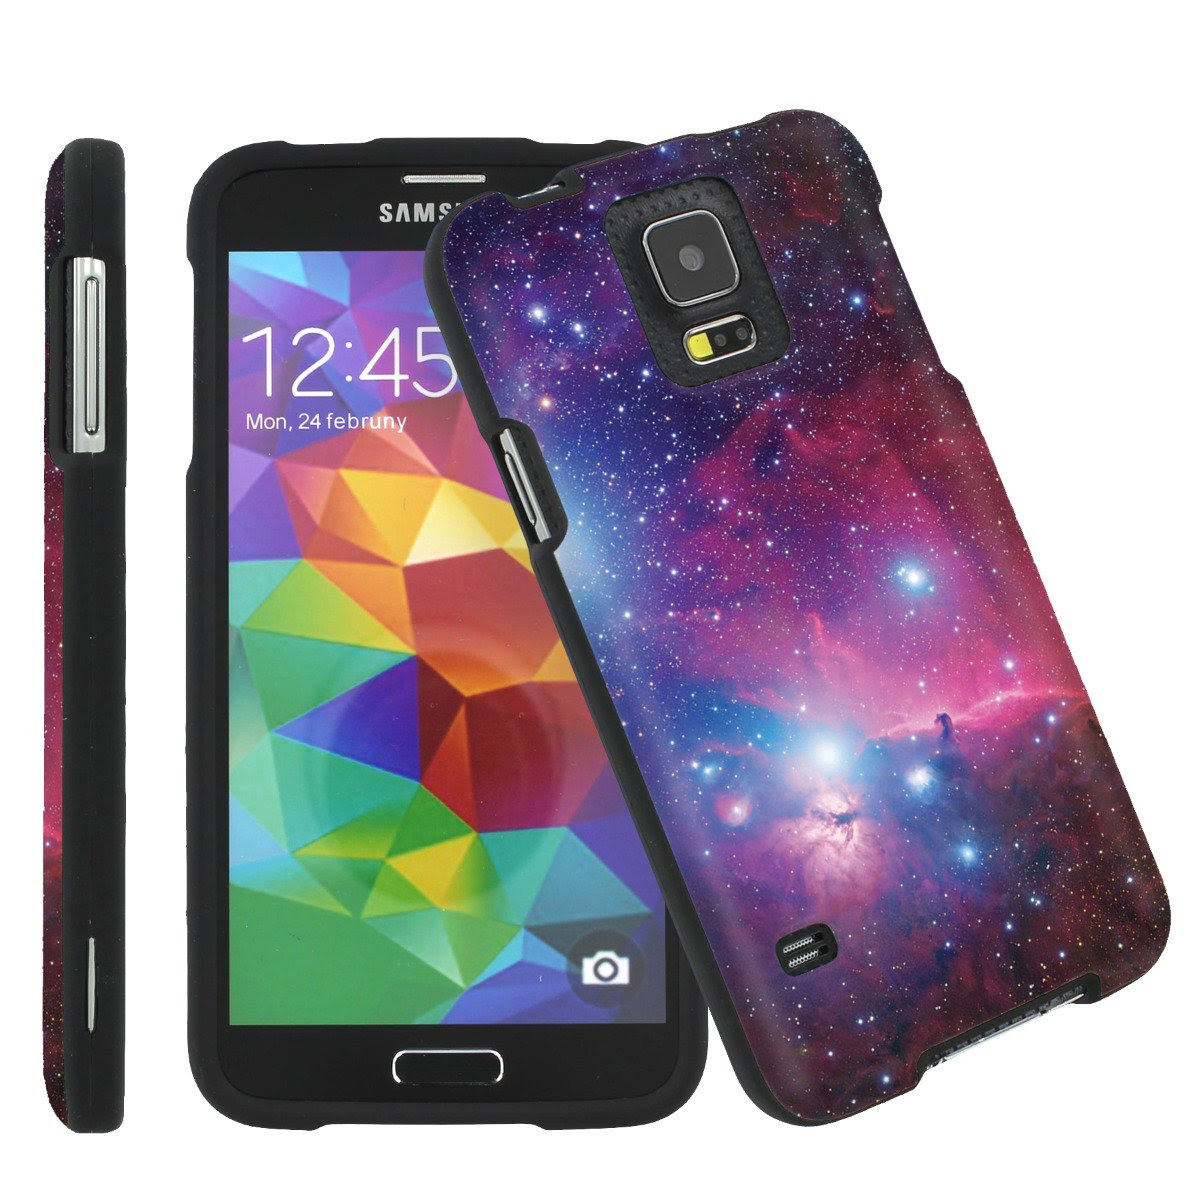 SAMSUNG GALAXY S5 SPACE DESIGNED CASES